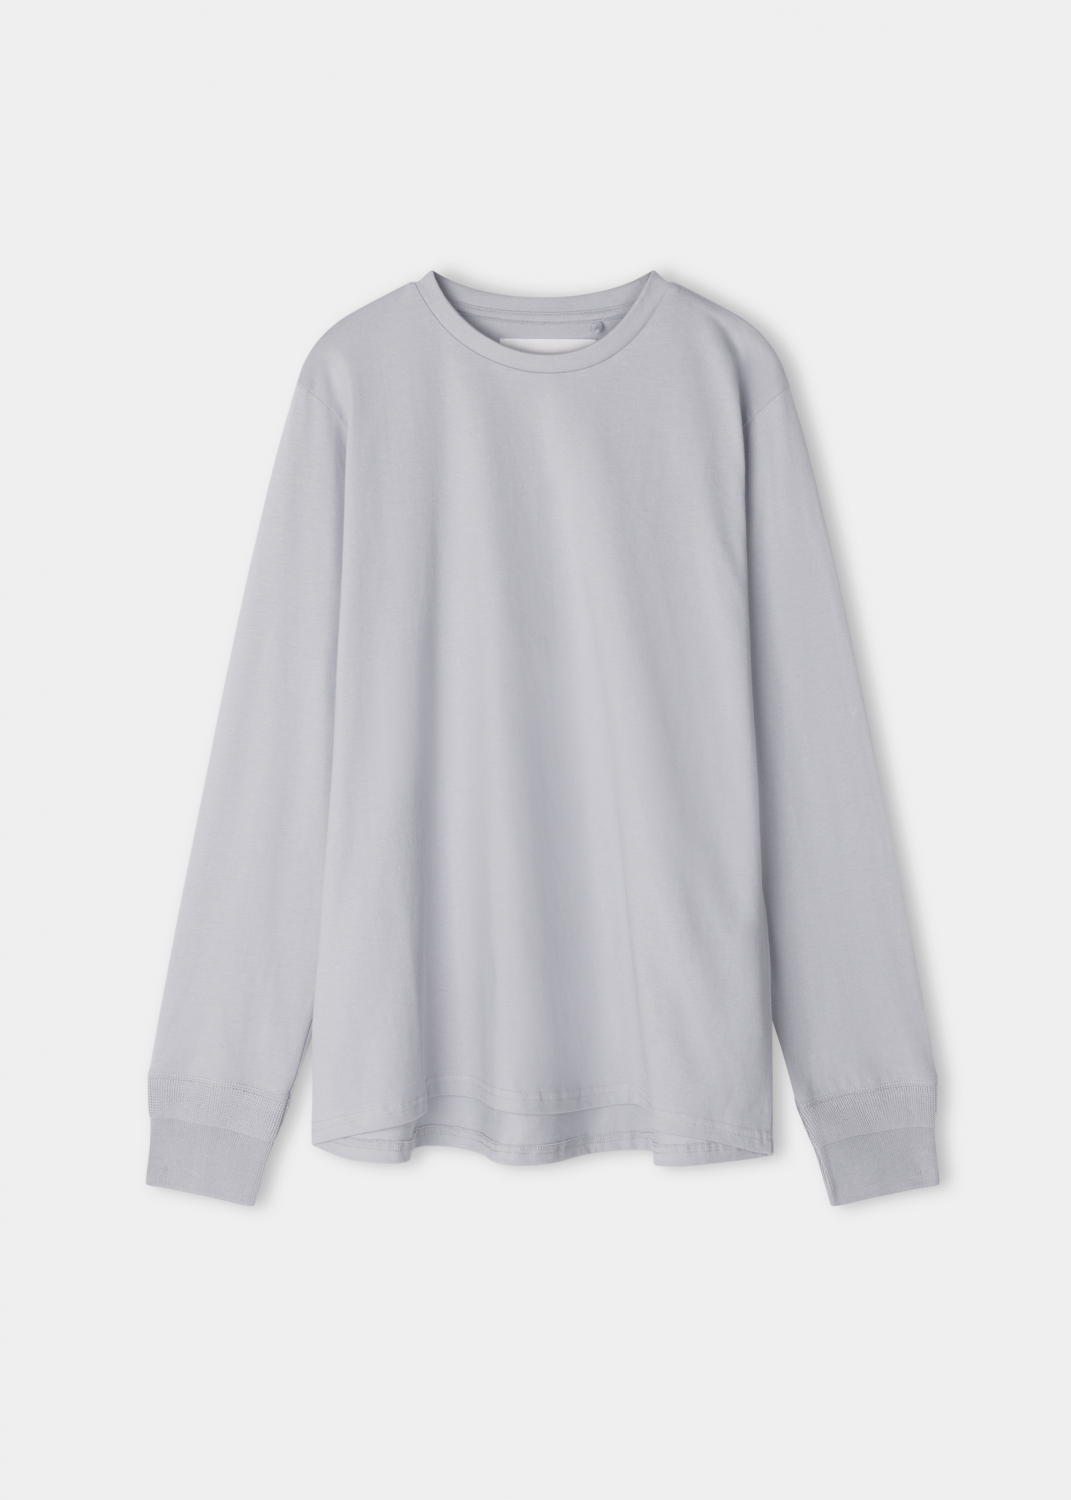 Blouses & Tees - Long Sleeve Tee Thumbnail